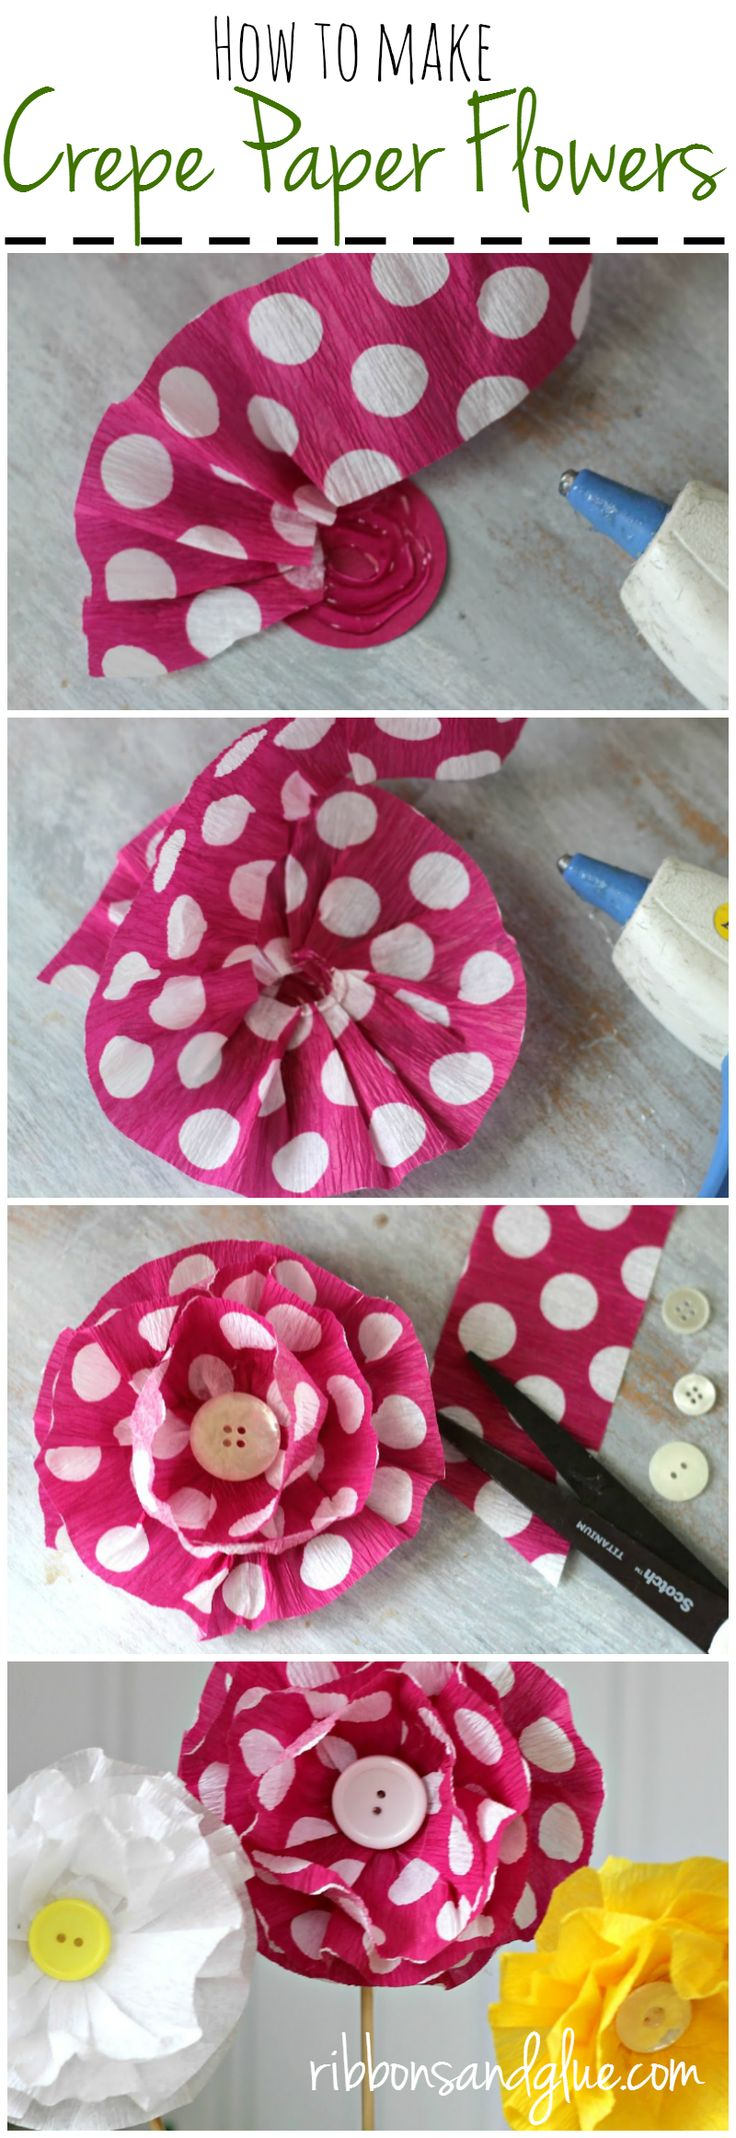 822 best ribbons glue blog images on pinterest for Craft ideas for adults step by step